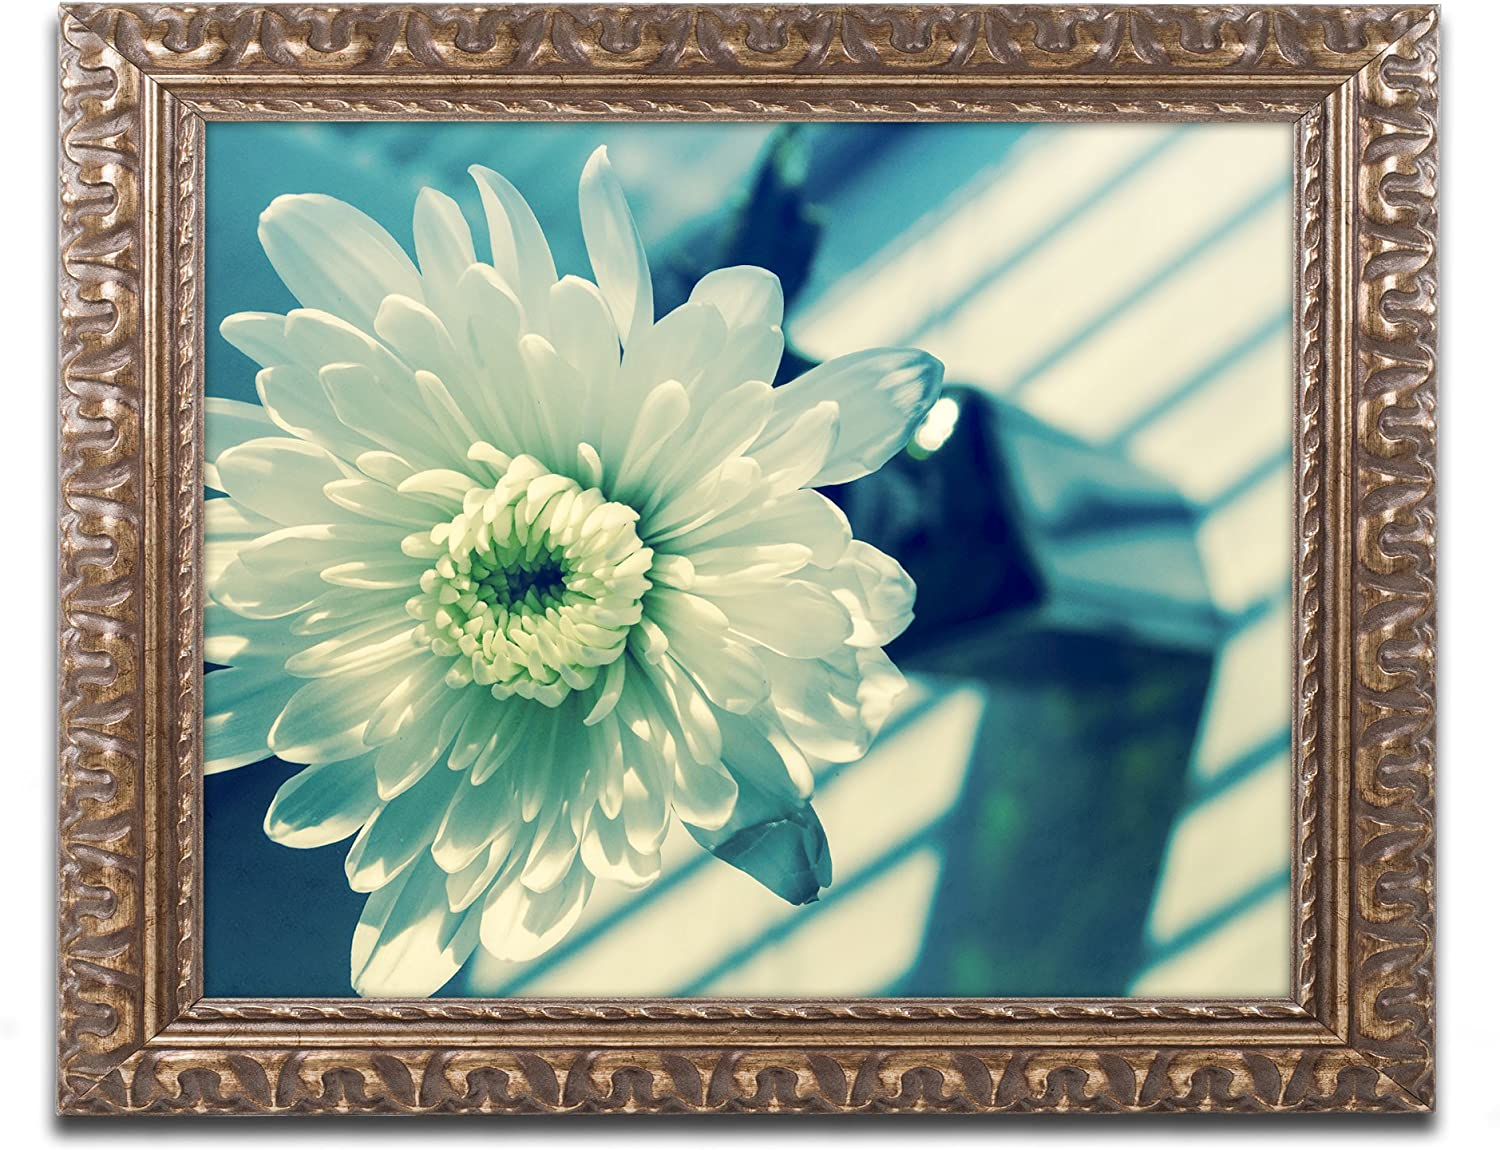 Amazon Com Melancholy Flower By Pipa Fine Art Gold Ornate Frame 16x20 Inch Home Kitchen